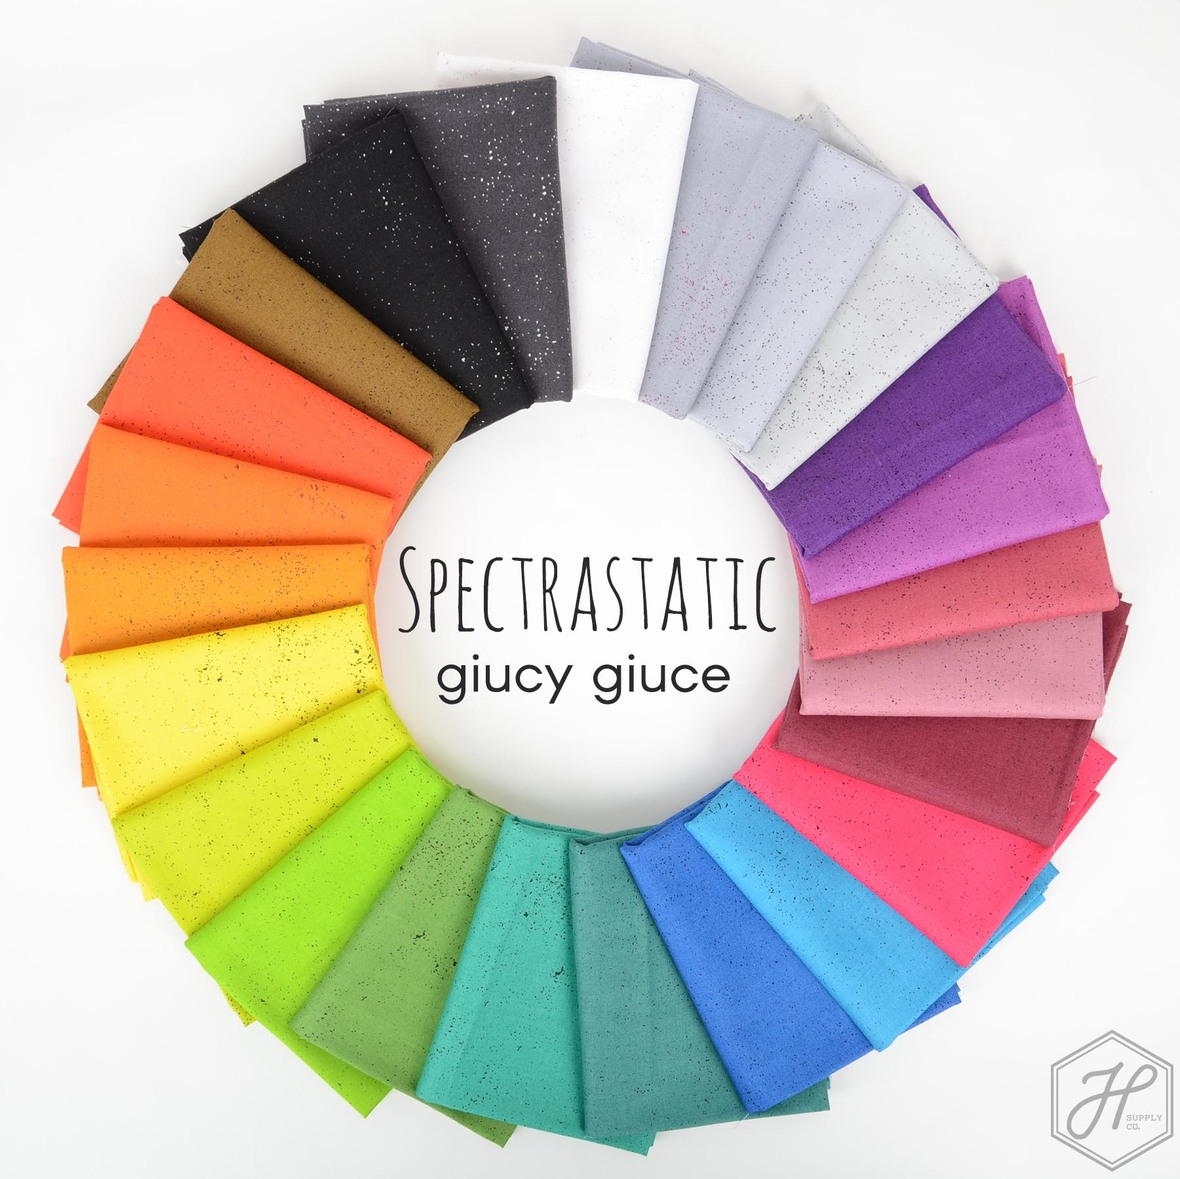 Spectrastatic Giucy Giuce fabric for Andover available at Hawthorne Supply Co